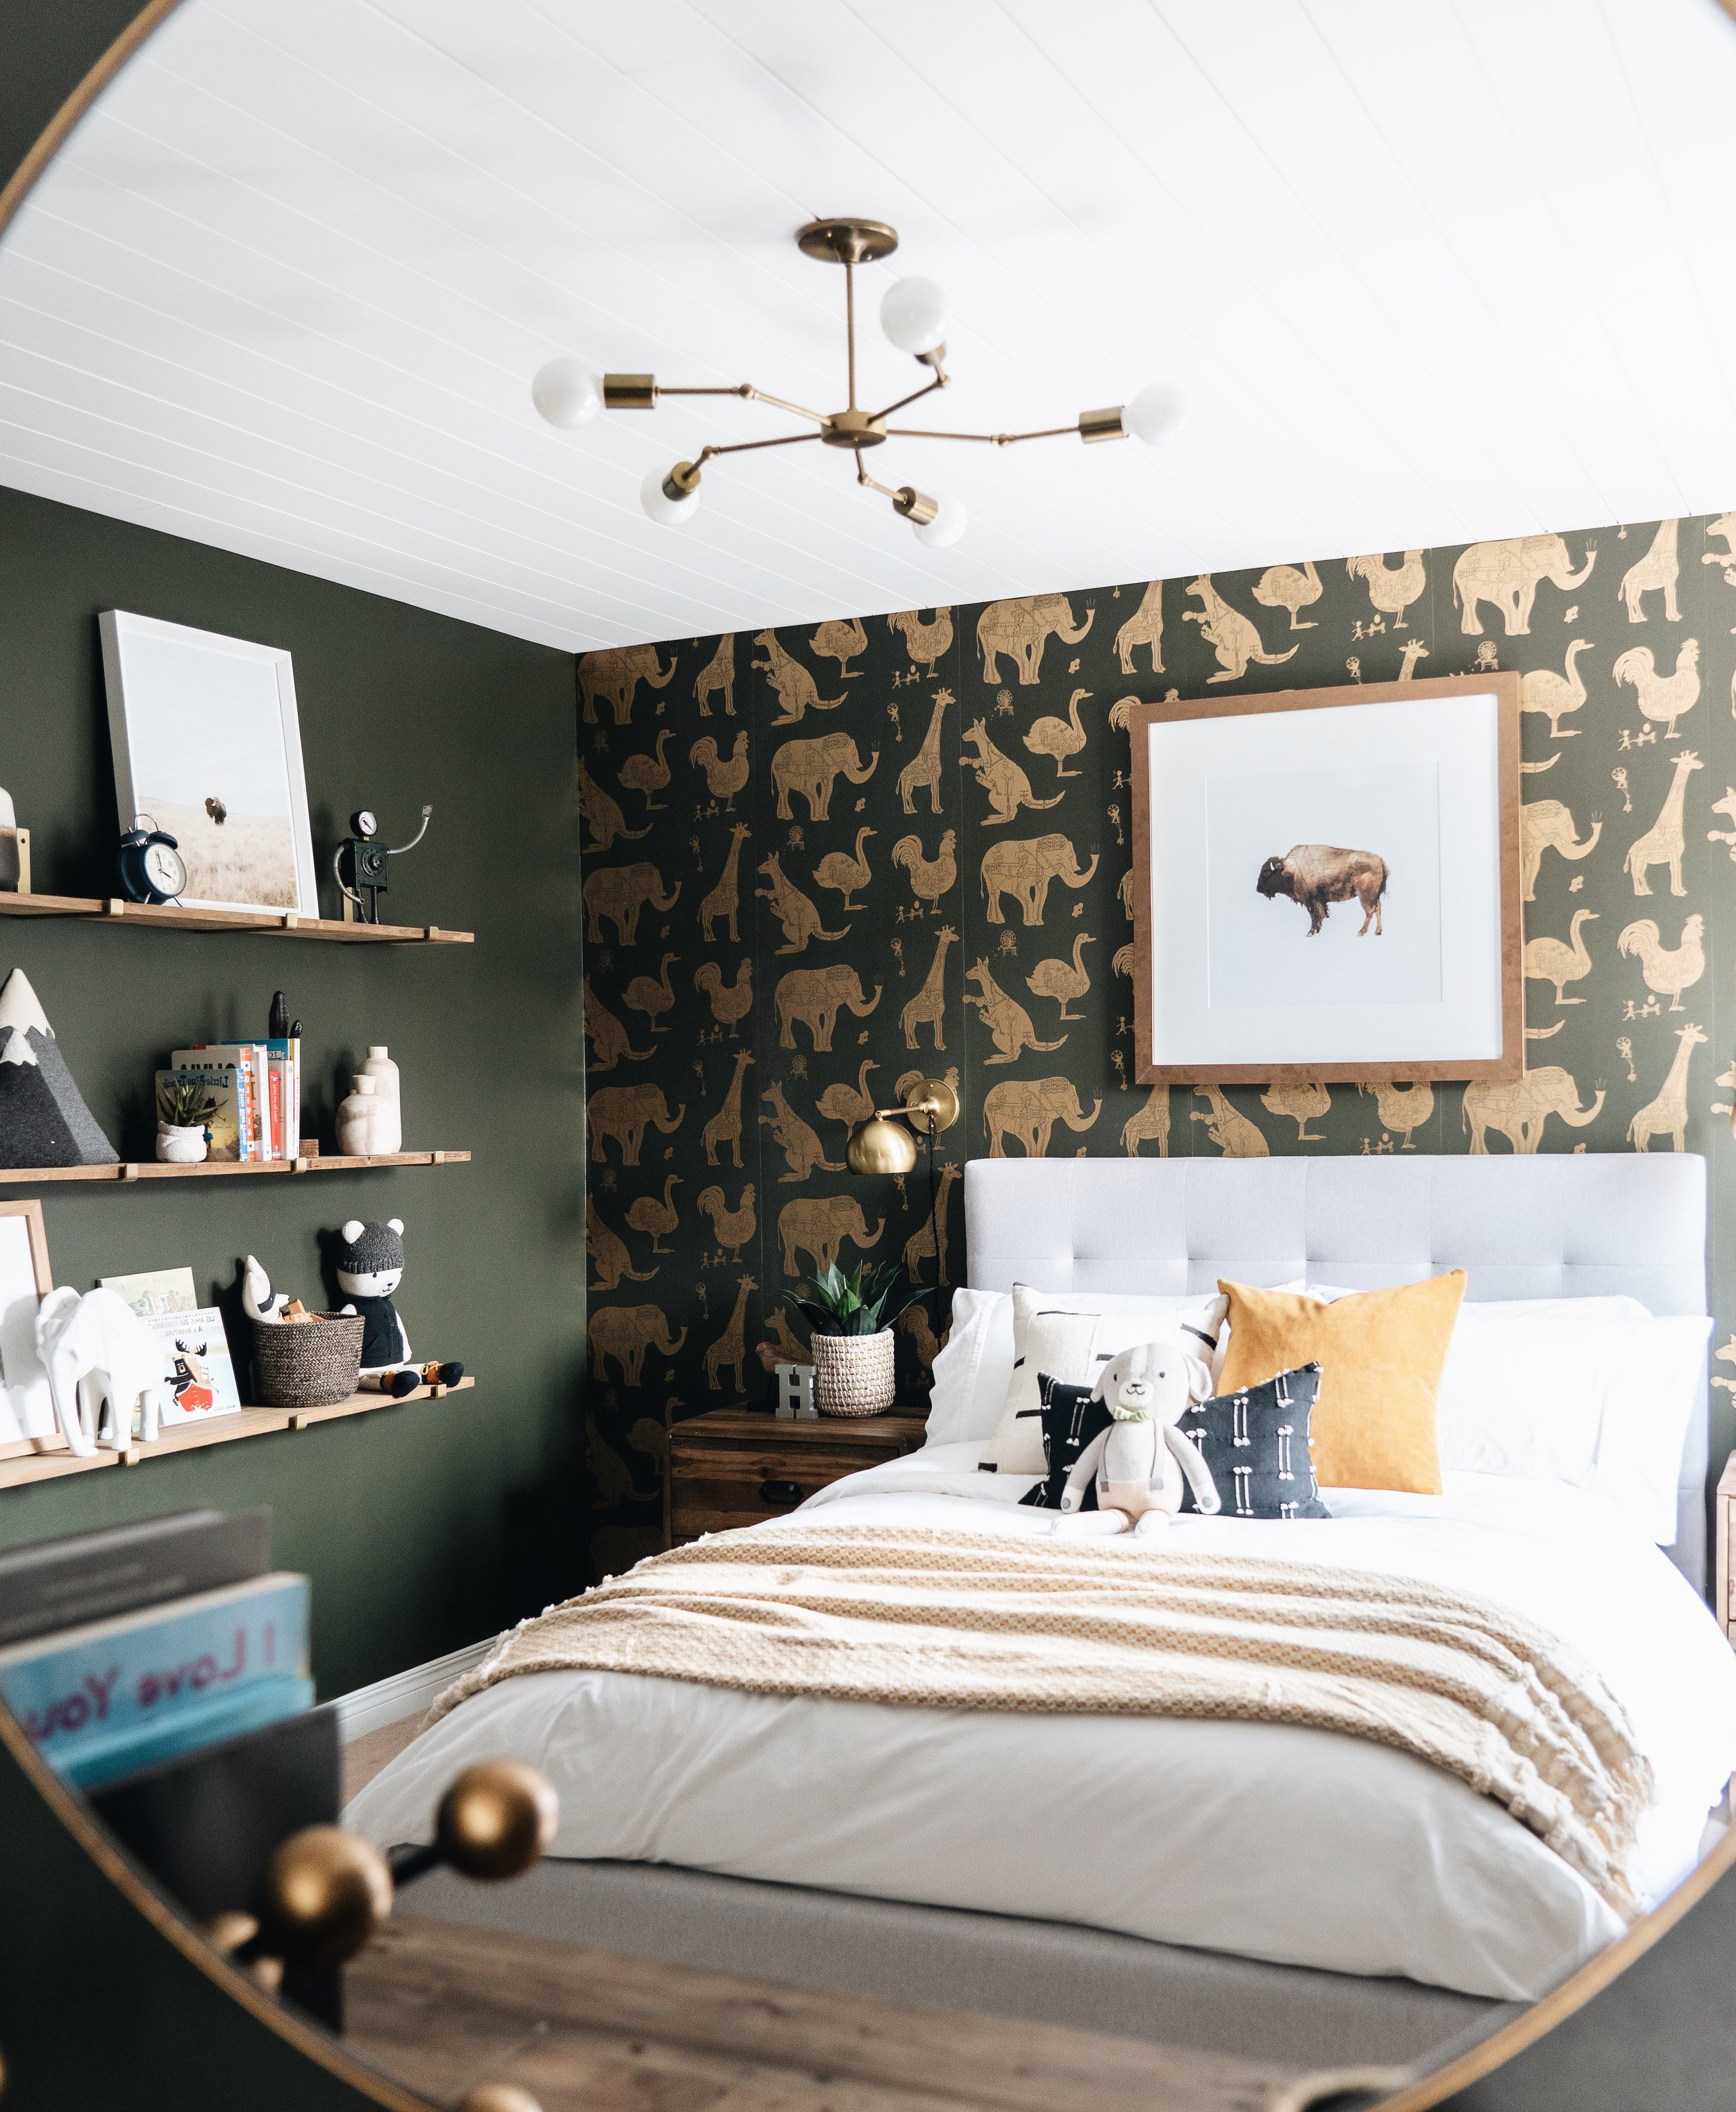 Moody and modern with a with a hint of rustic charm in this beautiful, playful  little boy's bedroom by Ottawa design firm Leclair Decor.